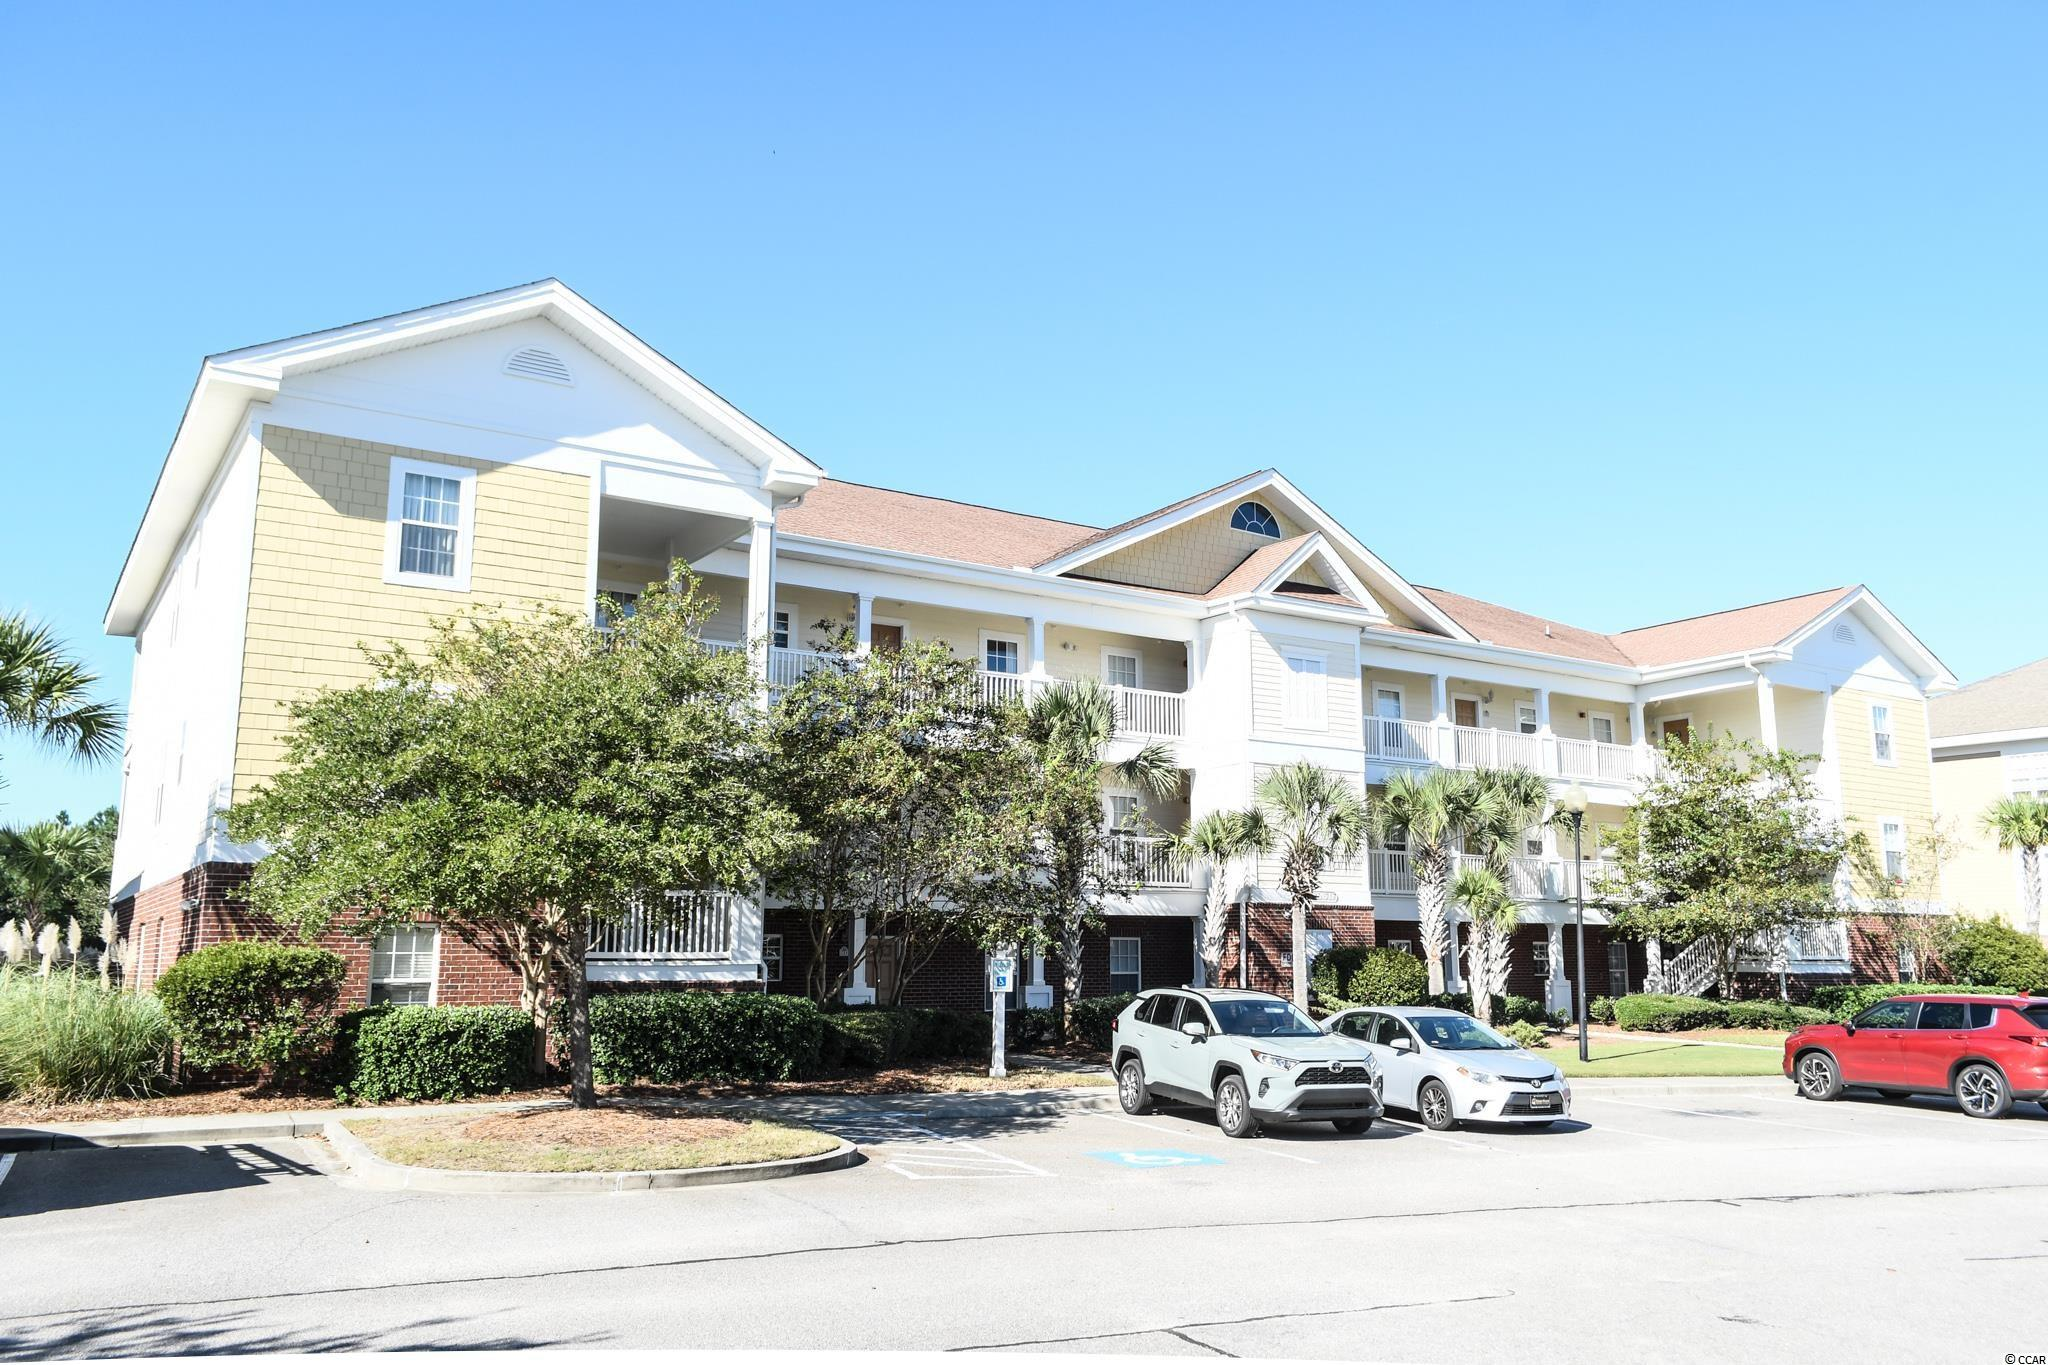 Spacious 2 bedroom/2 bath condo located in Barefoot Resorts. Barefoot Resort is centrally located in North Myrtle Beach which offers some of the best beaches, dining, entertainment, shopping and relaxation. Perfect for a primary, secondary or as an investment property.